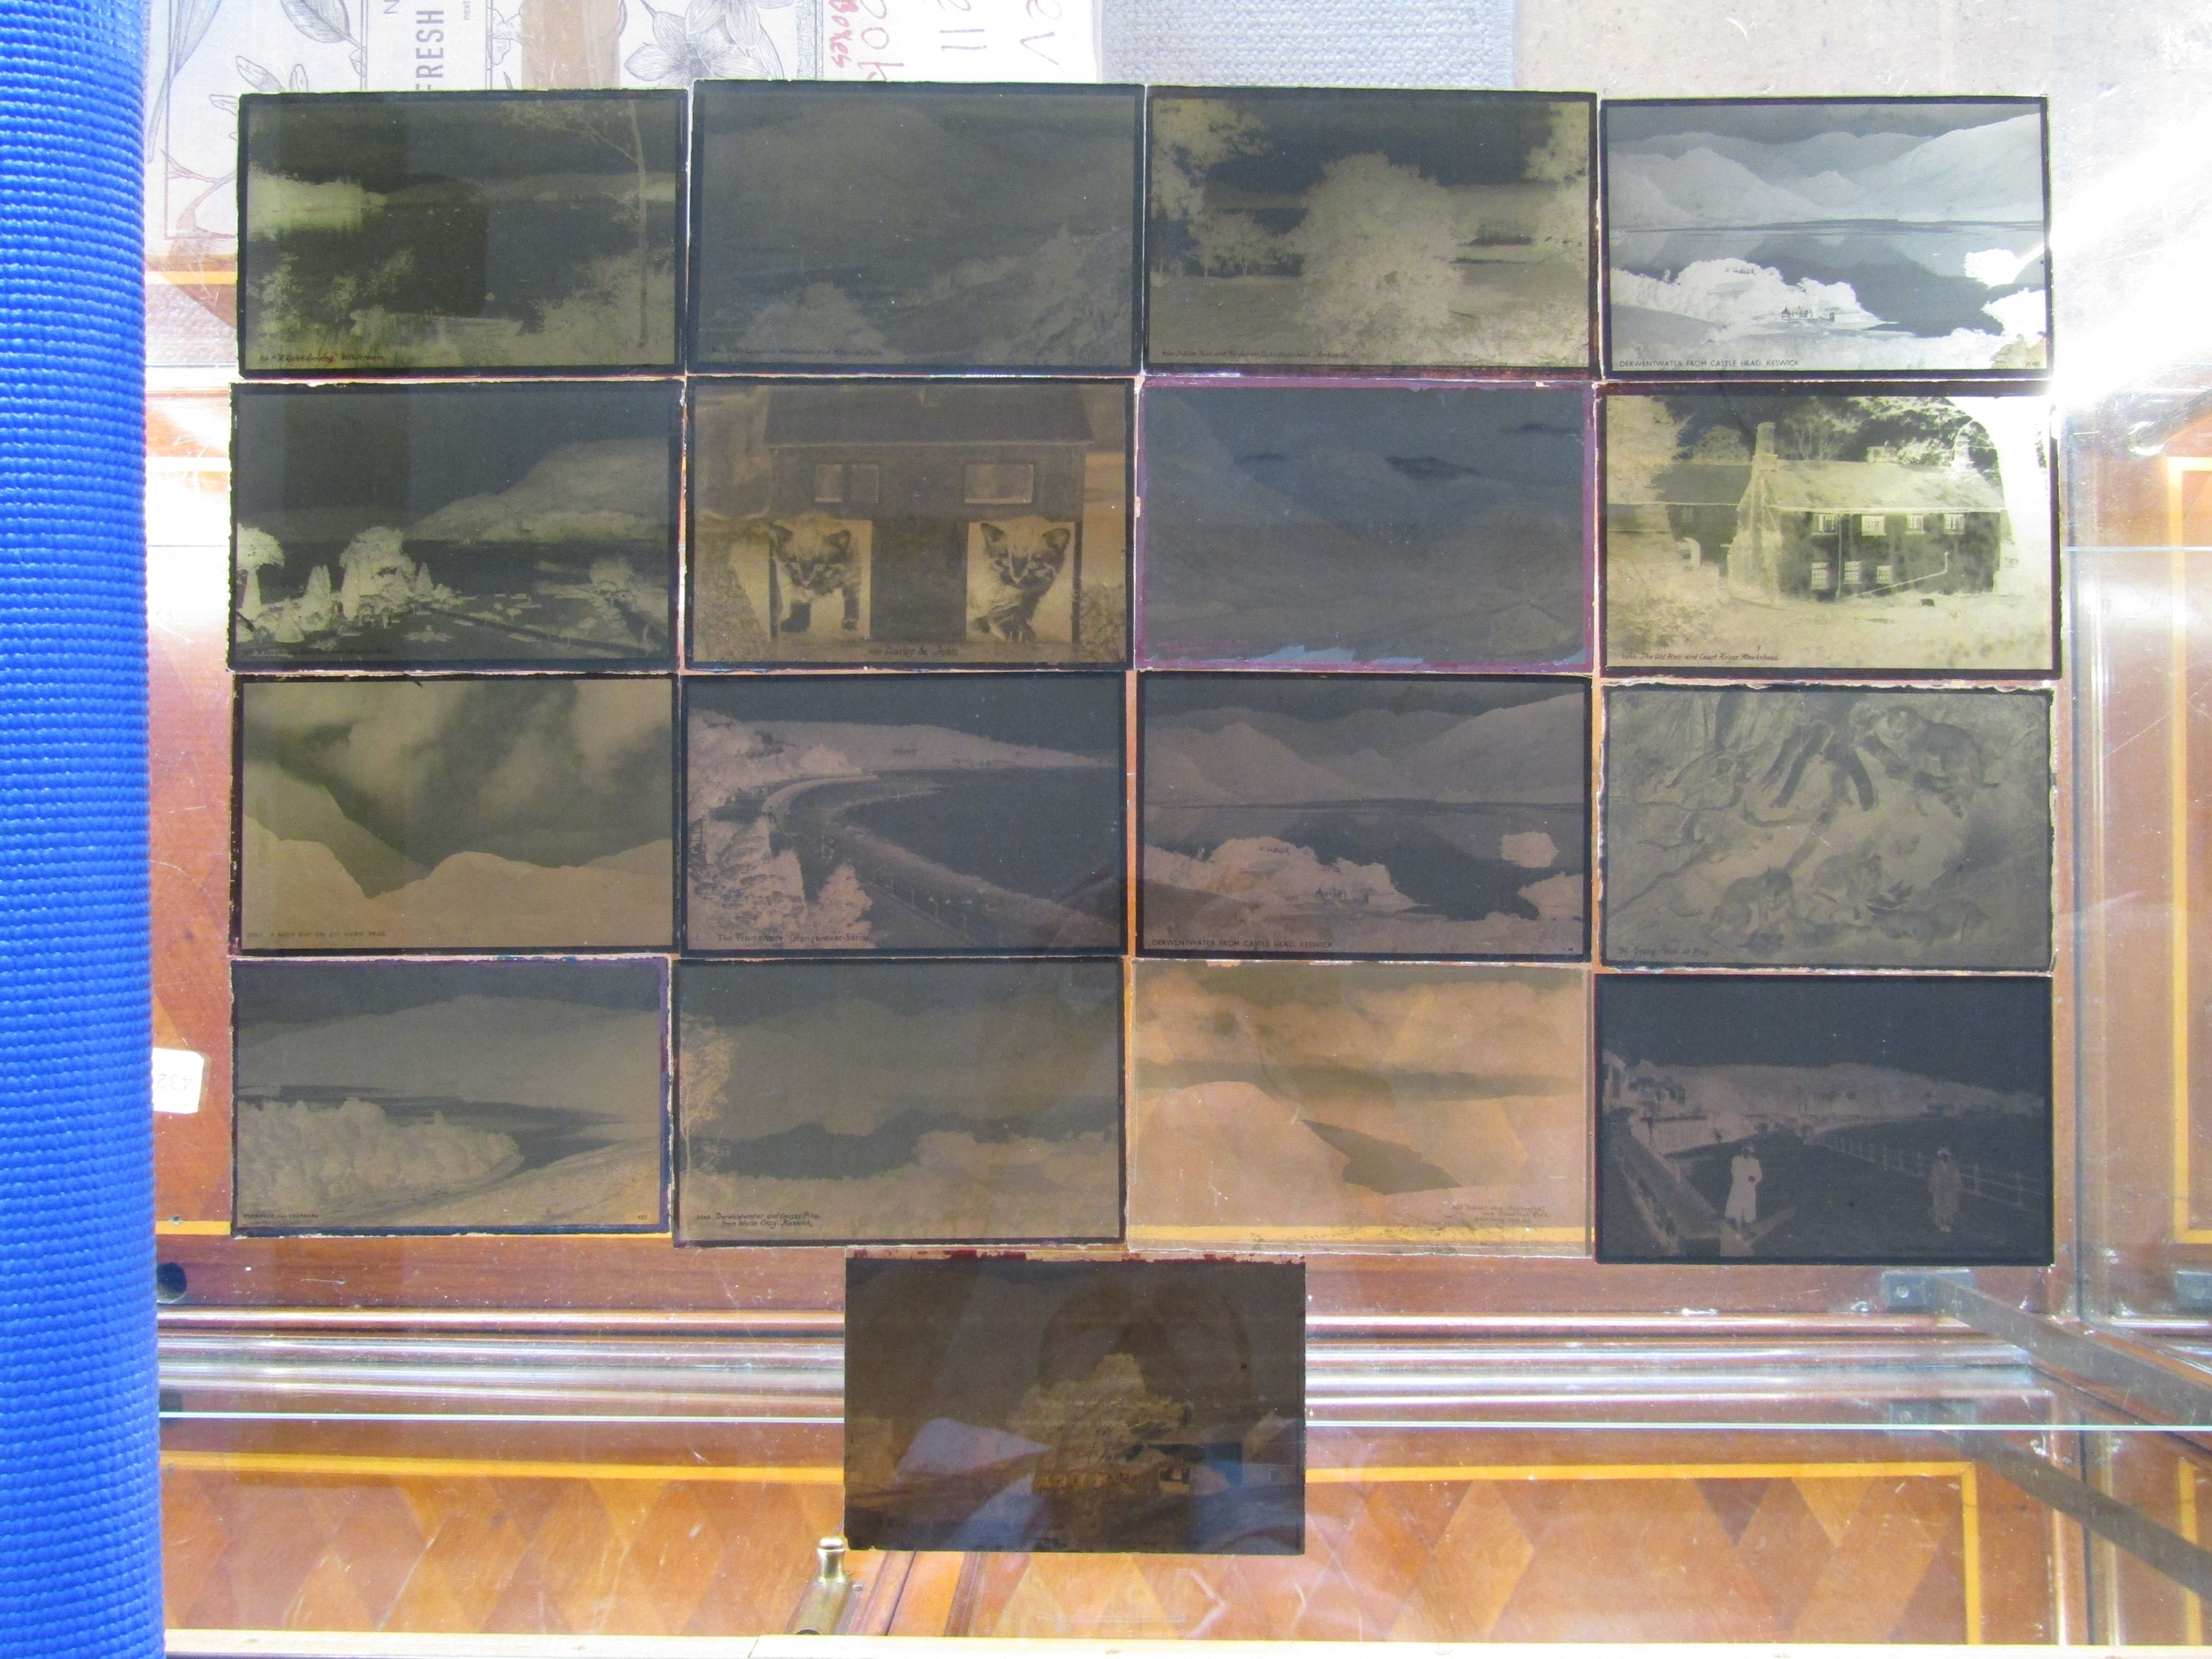 Lot 29 - A quantity of original Lake District glass plate photograph negatives by the Abraham brothers of